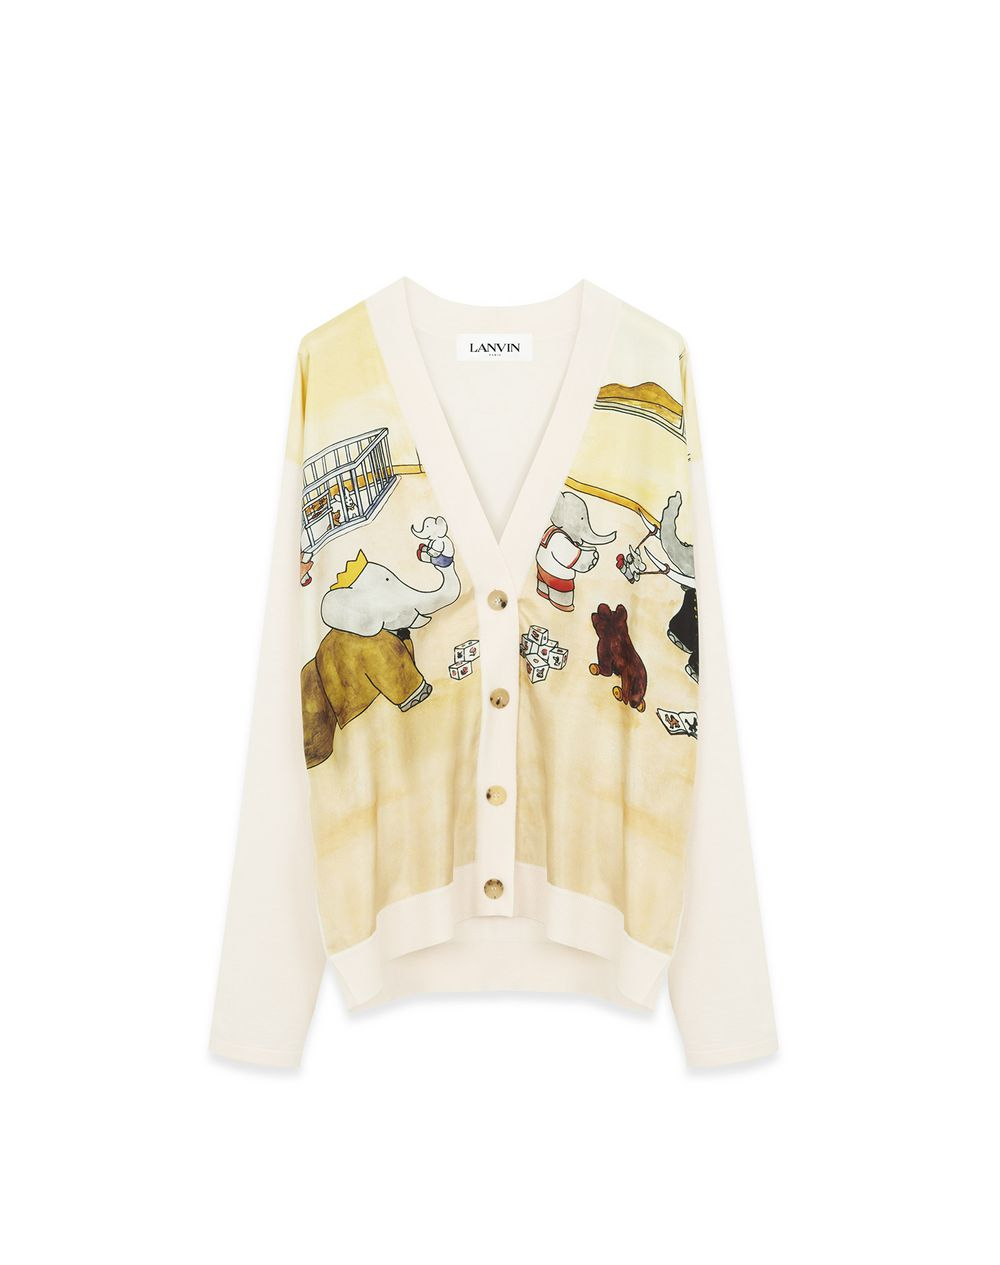 PRINTED CARDIGAN IN WOOL AND SILK - Lanvin